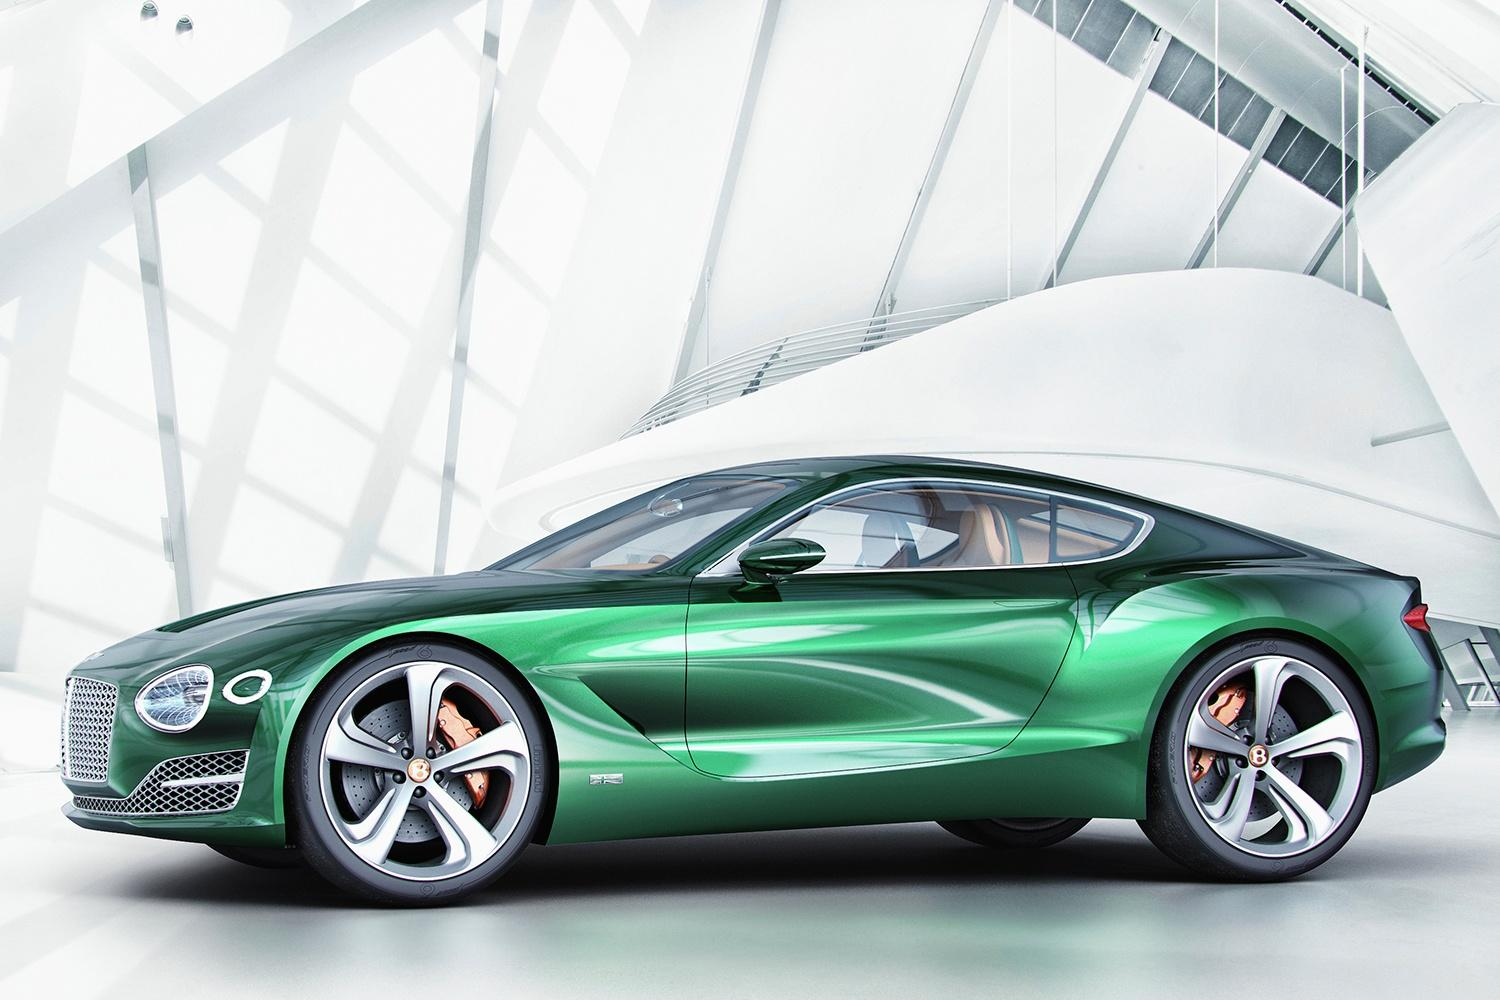 Will Bentley be the next VW Group brand to build an electric car?